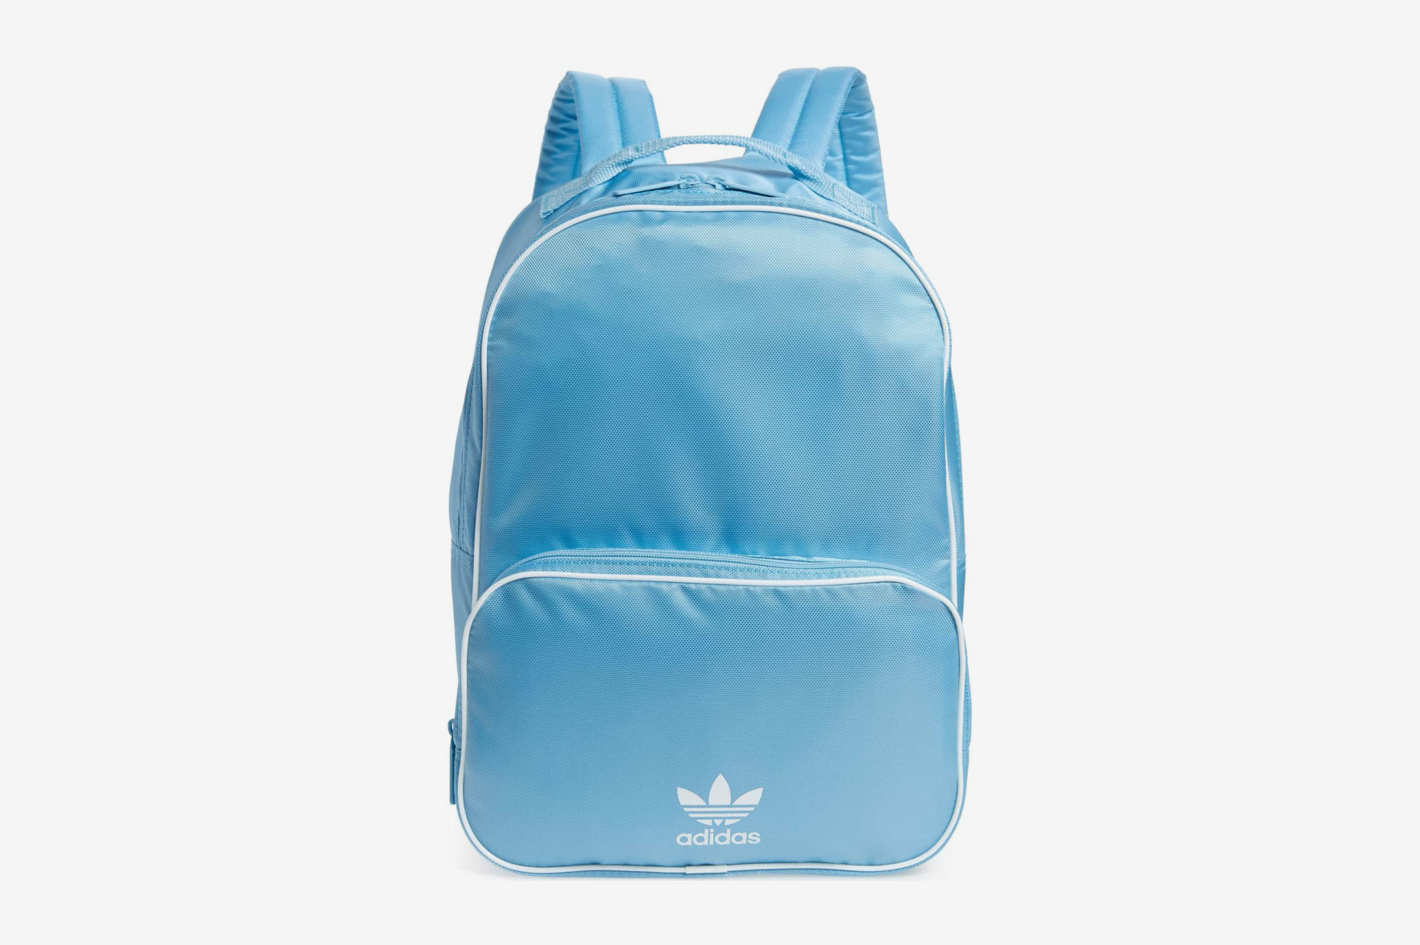 ca67fcd787 Adidas Originals Santiago Backpack at Nordstrom